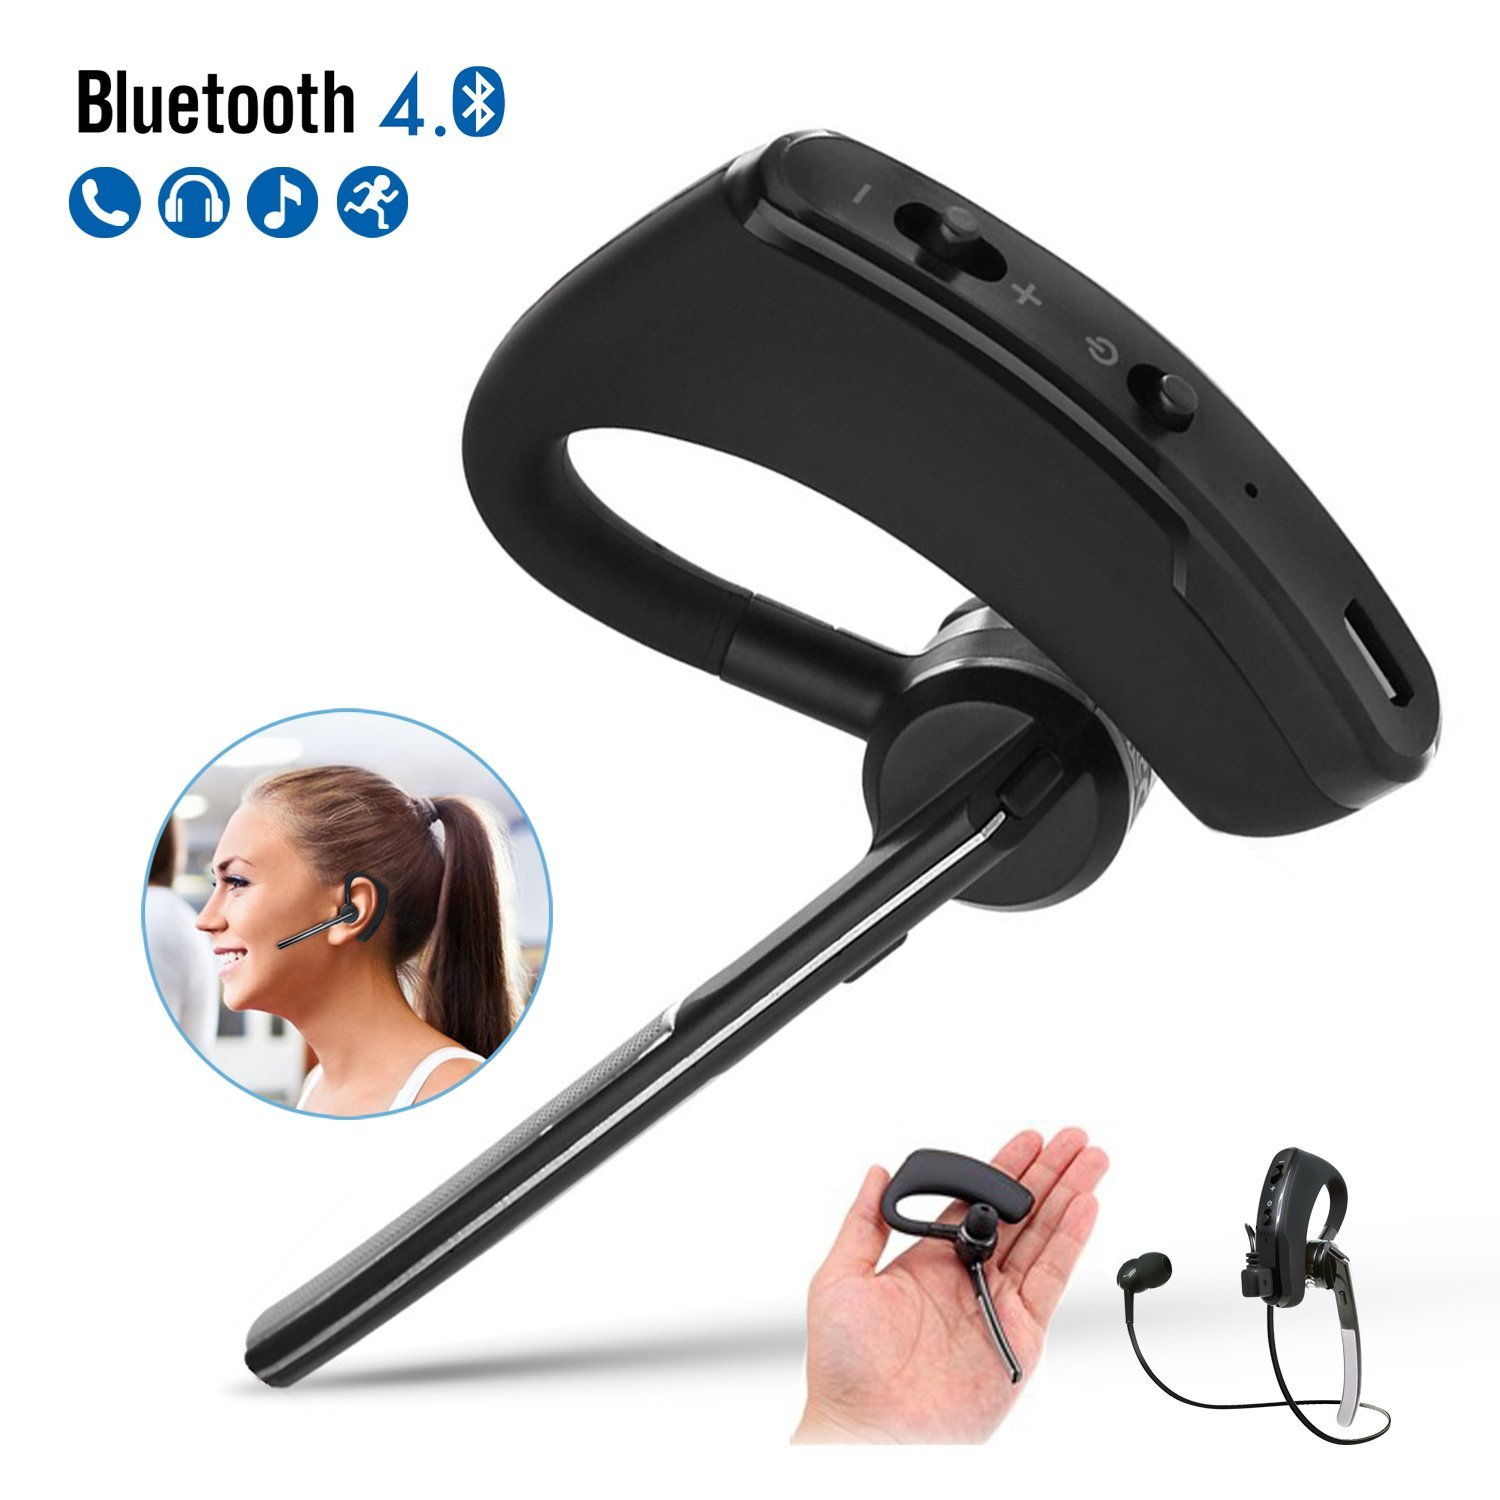 Costech Bluetooth Headphone, Wireless Bluetooth Headset Sweat Proof Earbuds Noise Isolating Sports Earphones Exercise/Running/Gym with Mic Stereo Sound for Apple Iphone, Samsung, Lg, Pc Laptop